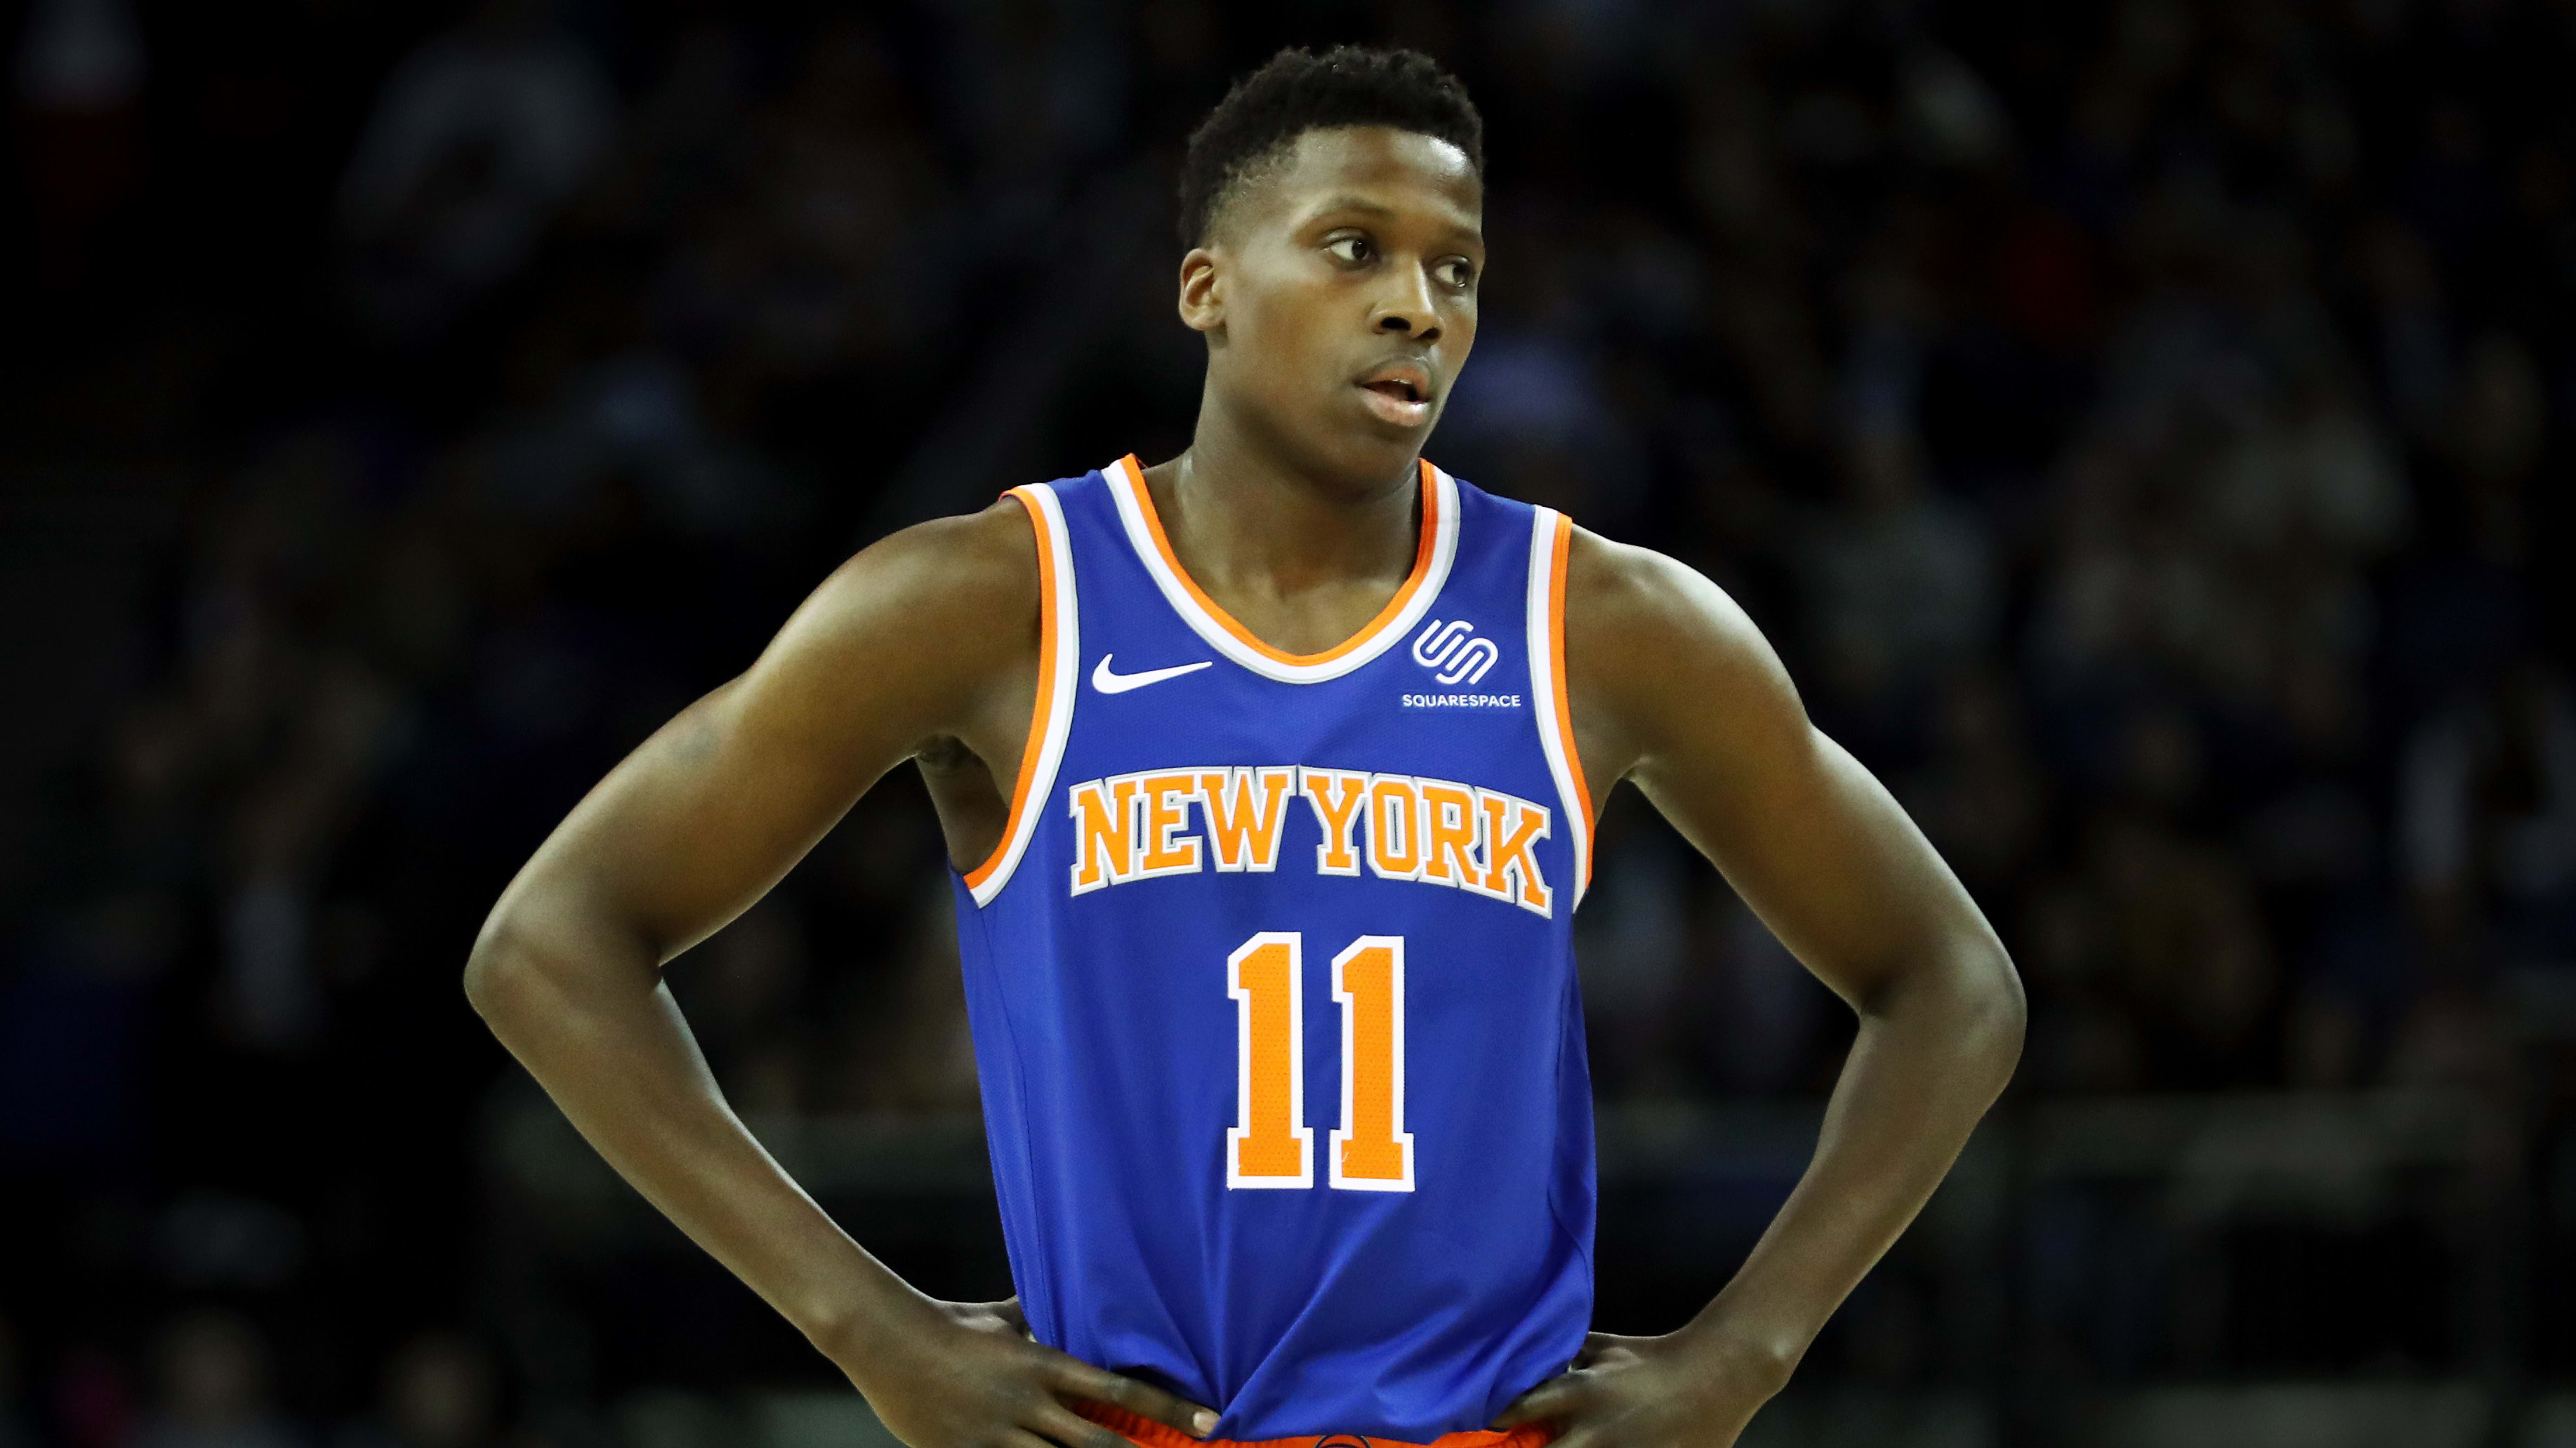 LONDON, ENGLAND - JANUARY 17:  Frank Ntilikina of The New York Knicks looks on during the NBA London game 2019 between Washington Wizards and New York Knicks at The O2 Arena on January 17, 2019 in London, England.  (Photo by Naomi Baker/Getty Images)